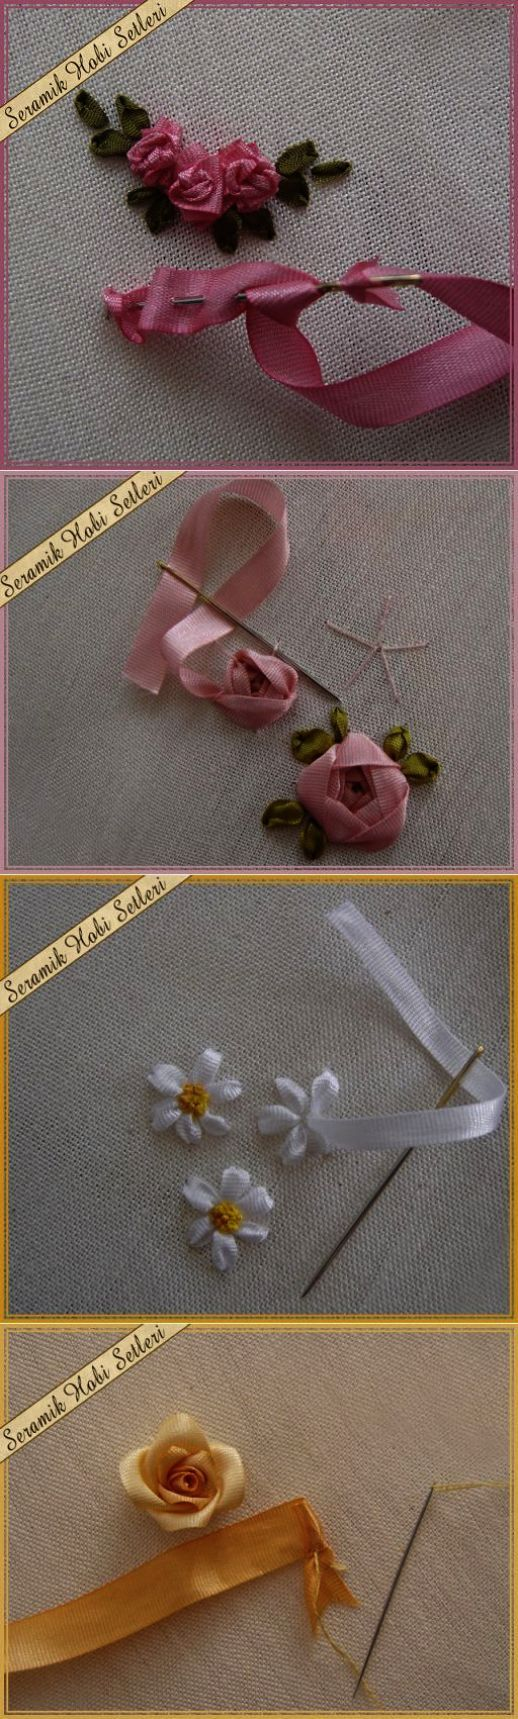 Fantastic Ribbon Embroidery Supplies Australia Exceptional